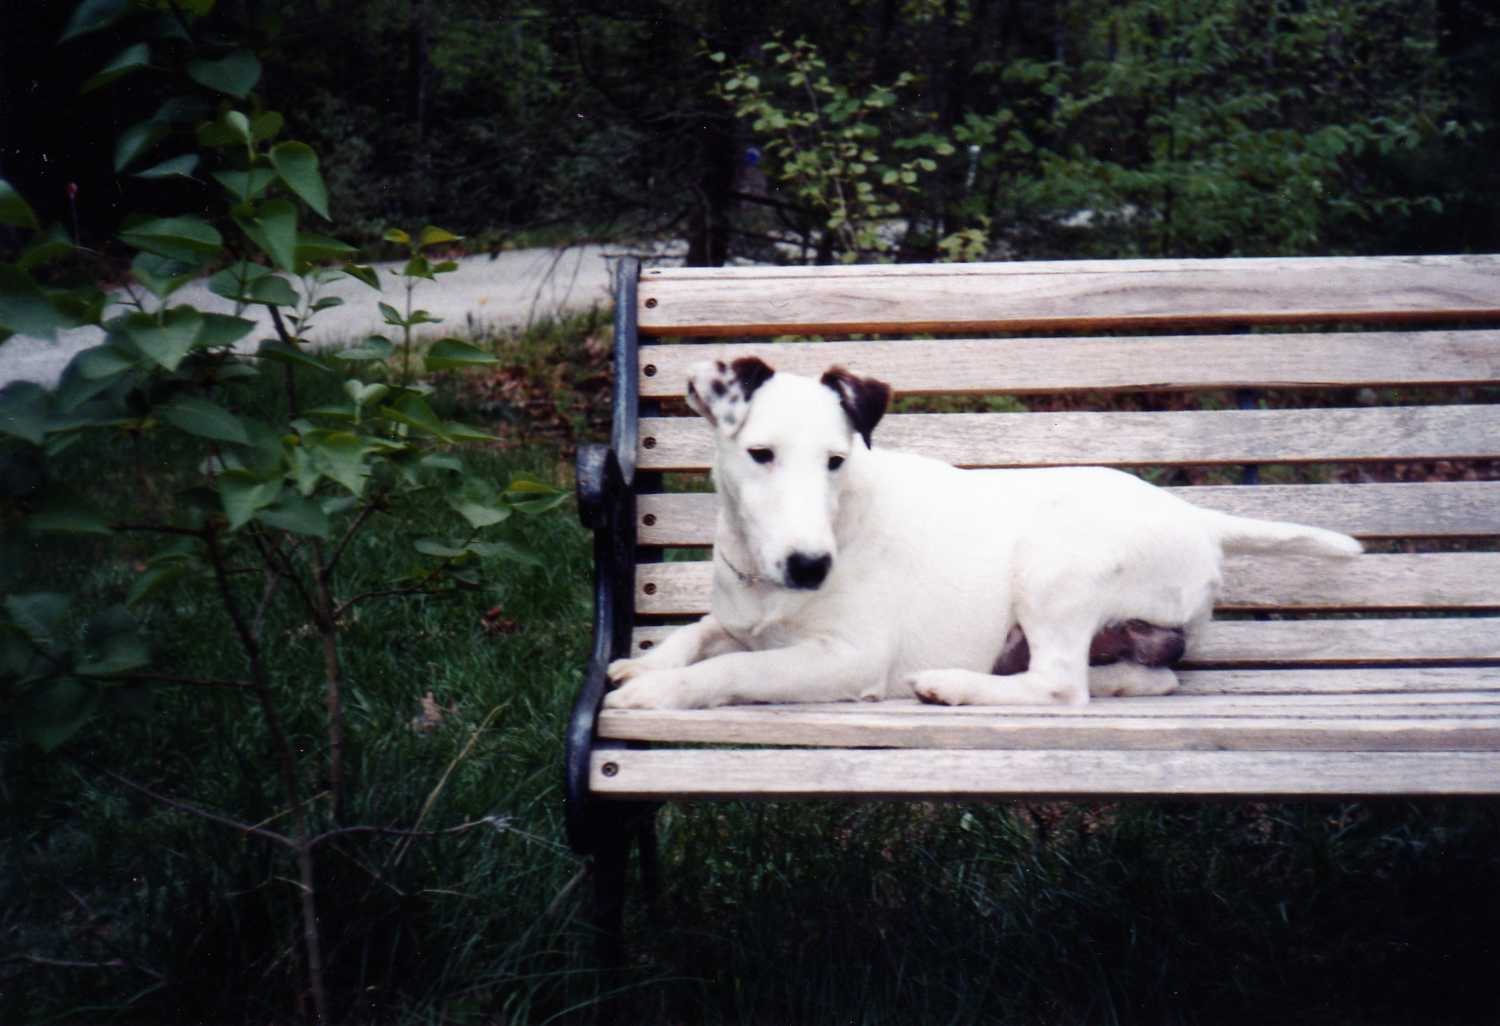 Dog on Park Bench